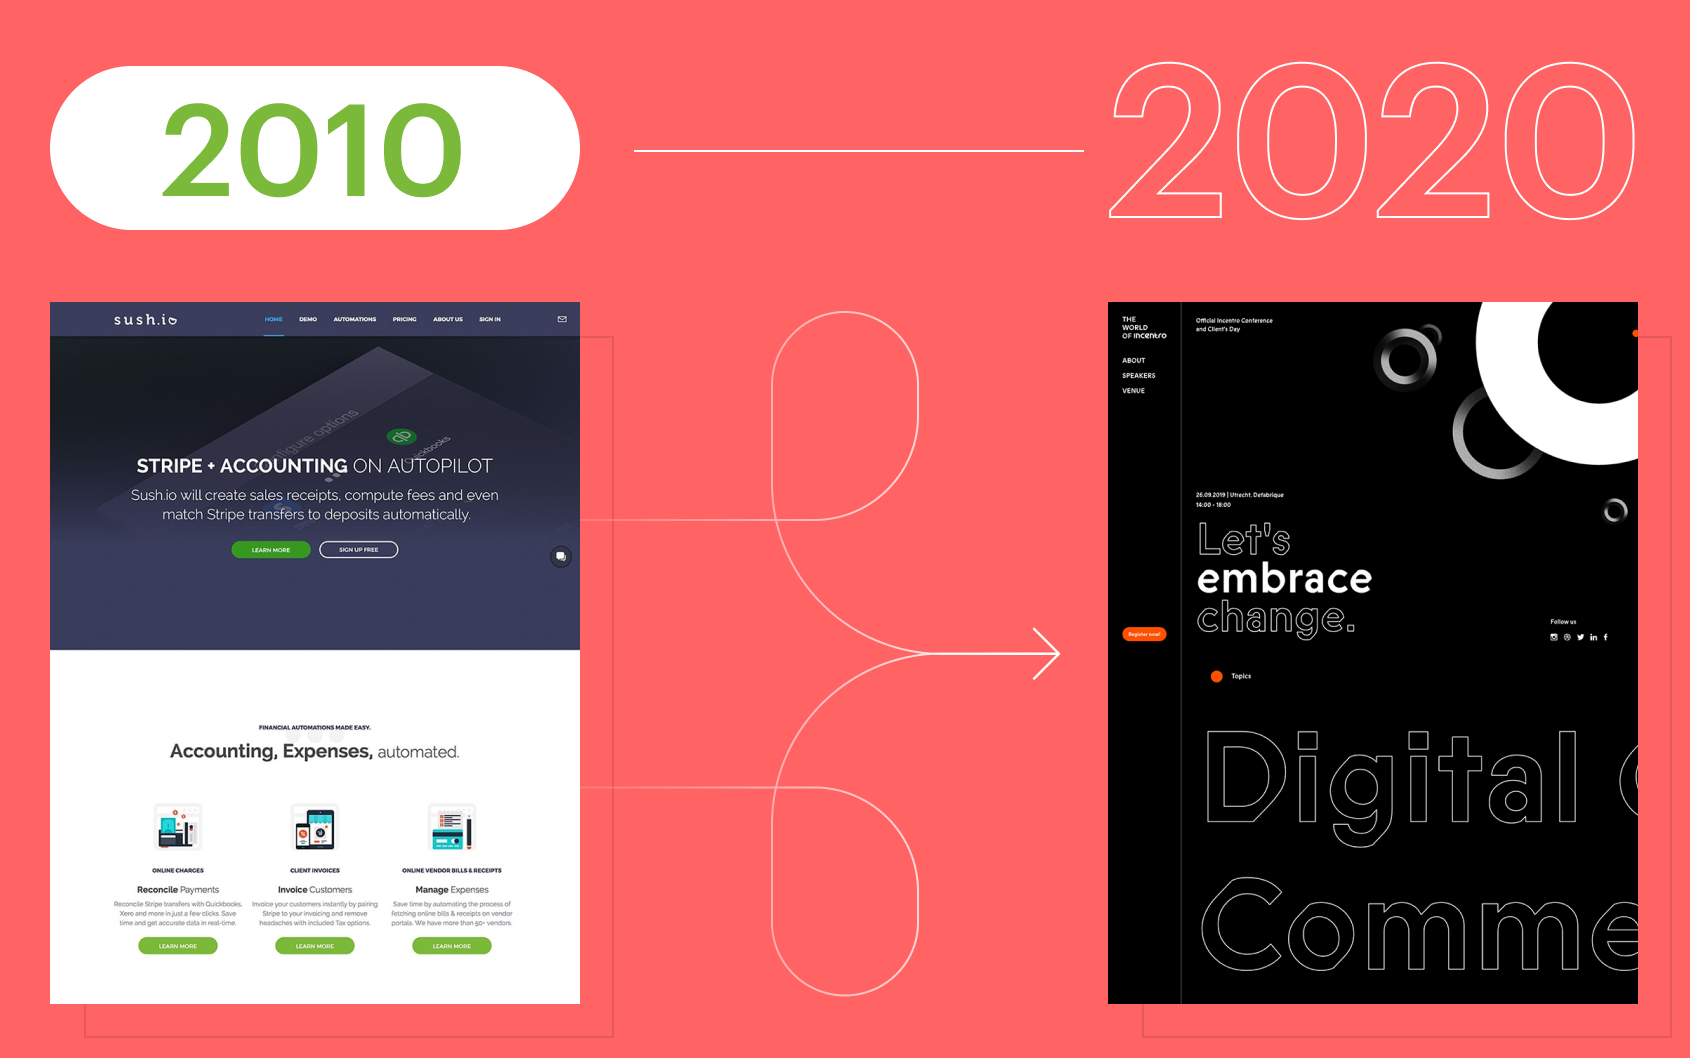 The New Web How Dev Tools And Collaboration Enable New Design